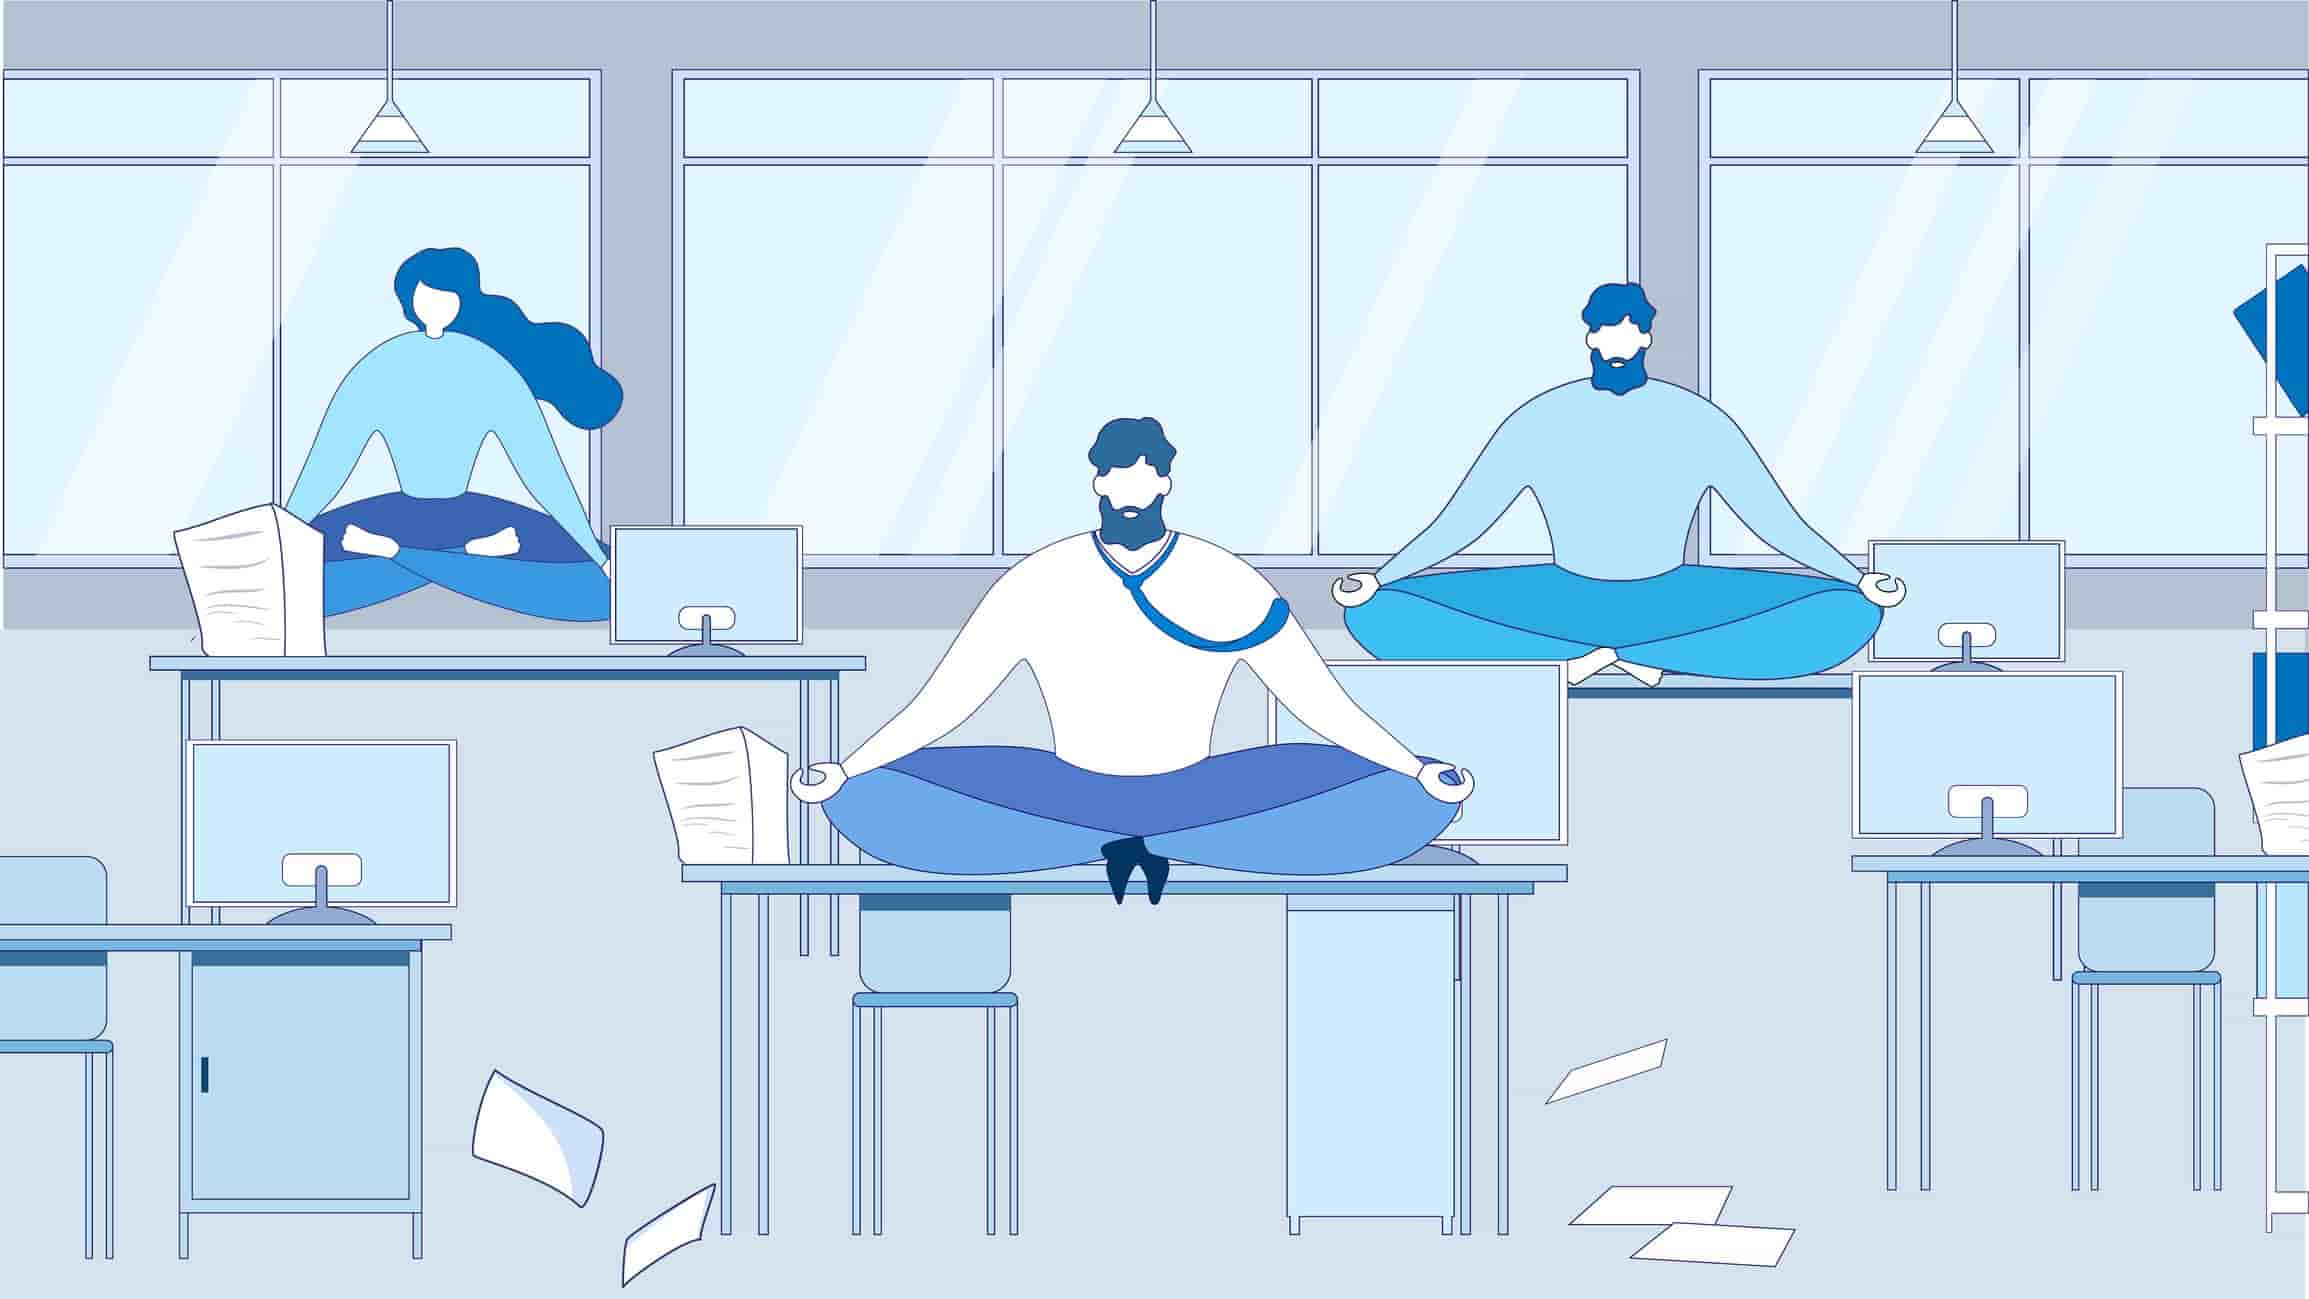 Cartoon employees participating in a workplace wellness day by doing yoga on their desks